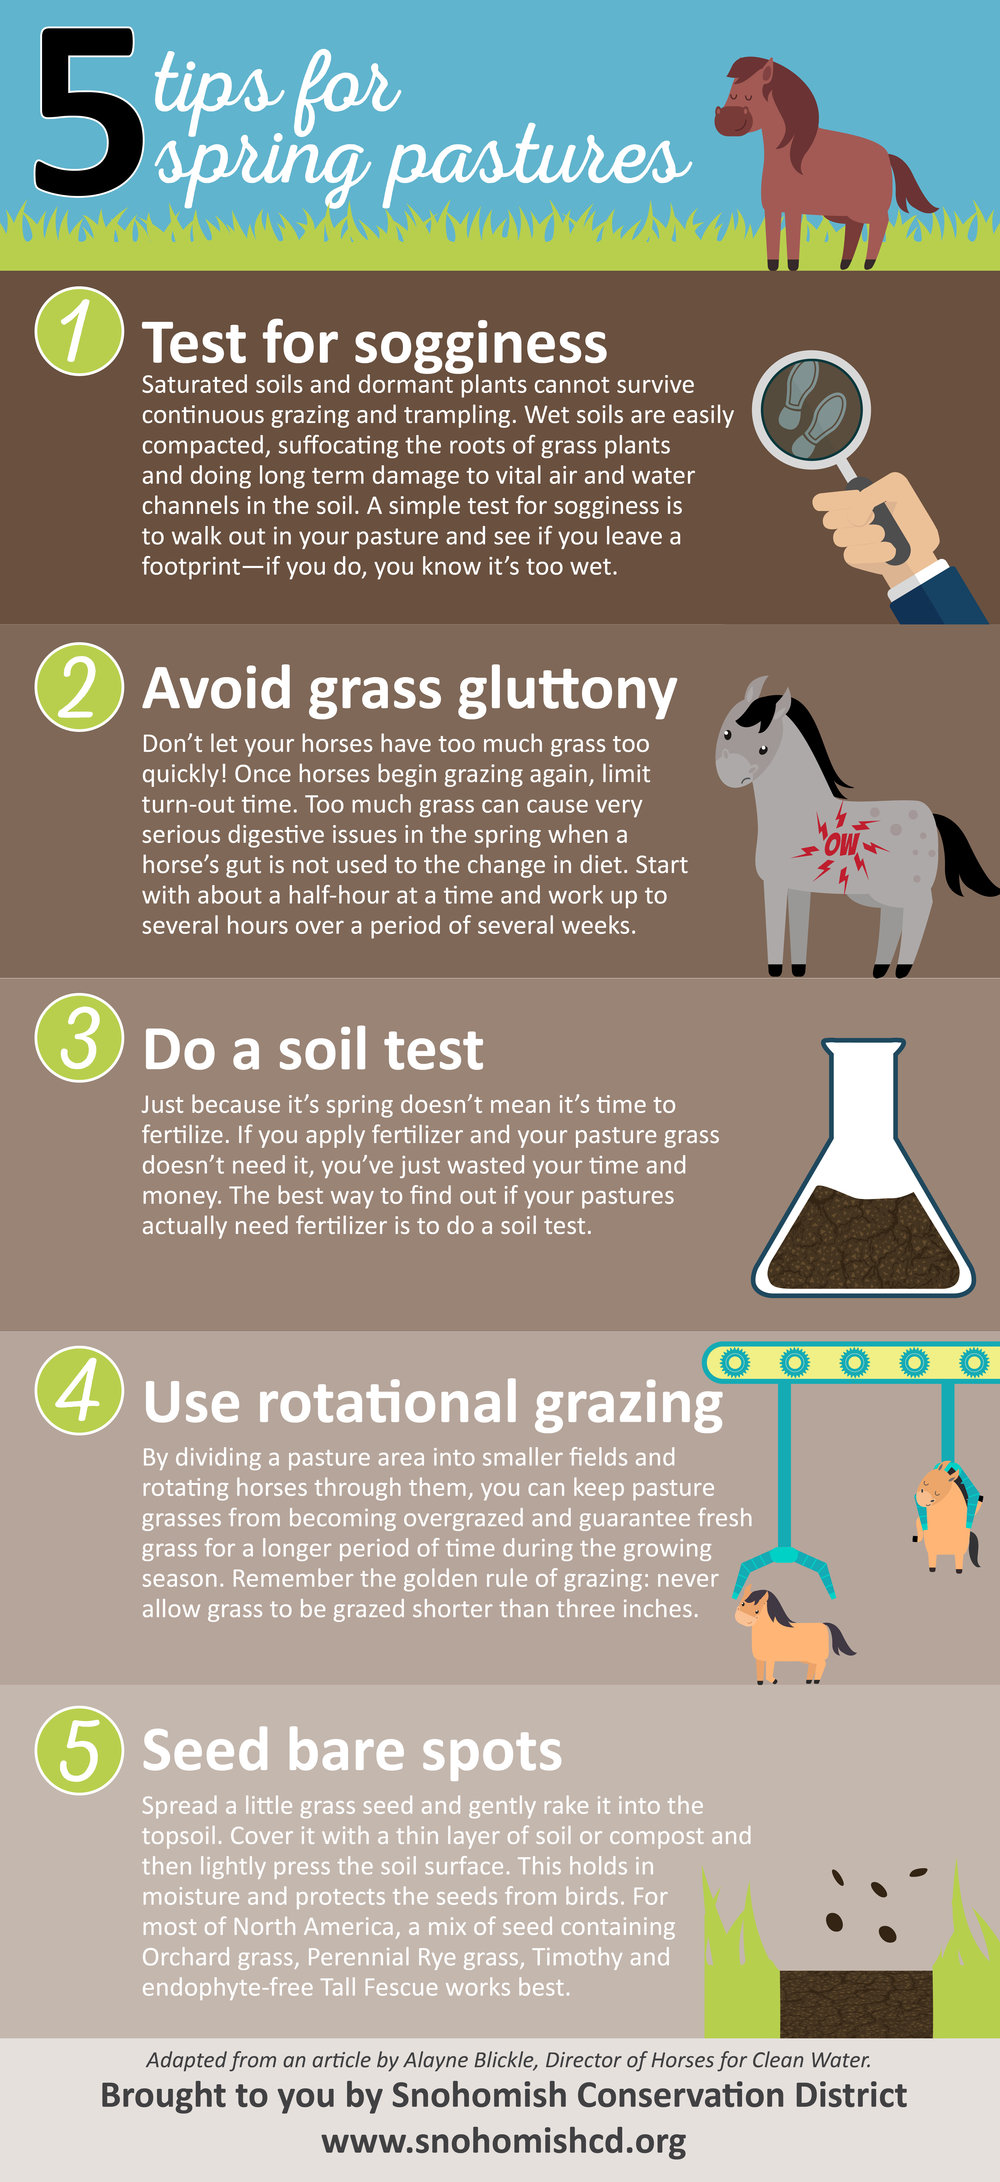 Best way to plant grass seed - It S That Time Of Year When The Grass Gets Greener And Grows Fast Here Are Some Things To Keep In Mind Before You Open Up The Gates To The Pasture